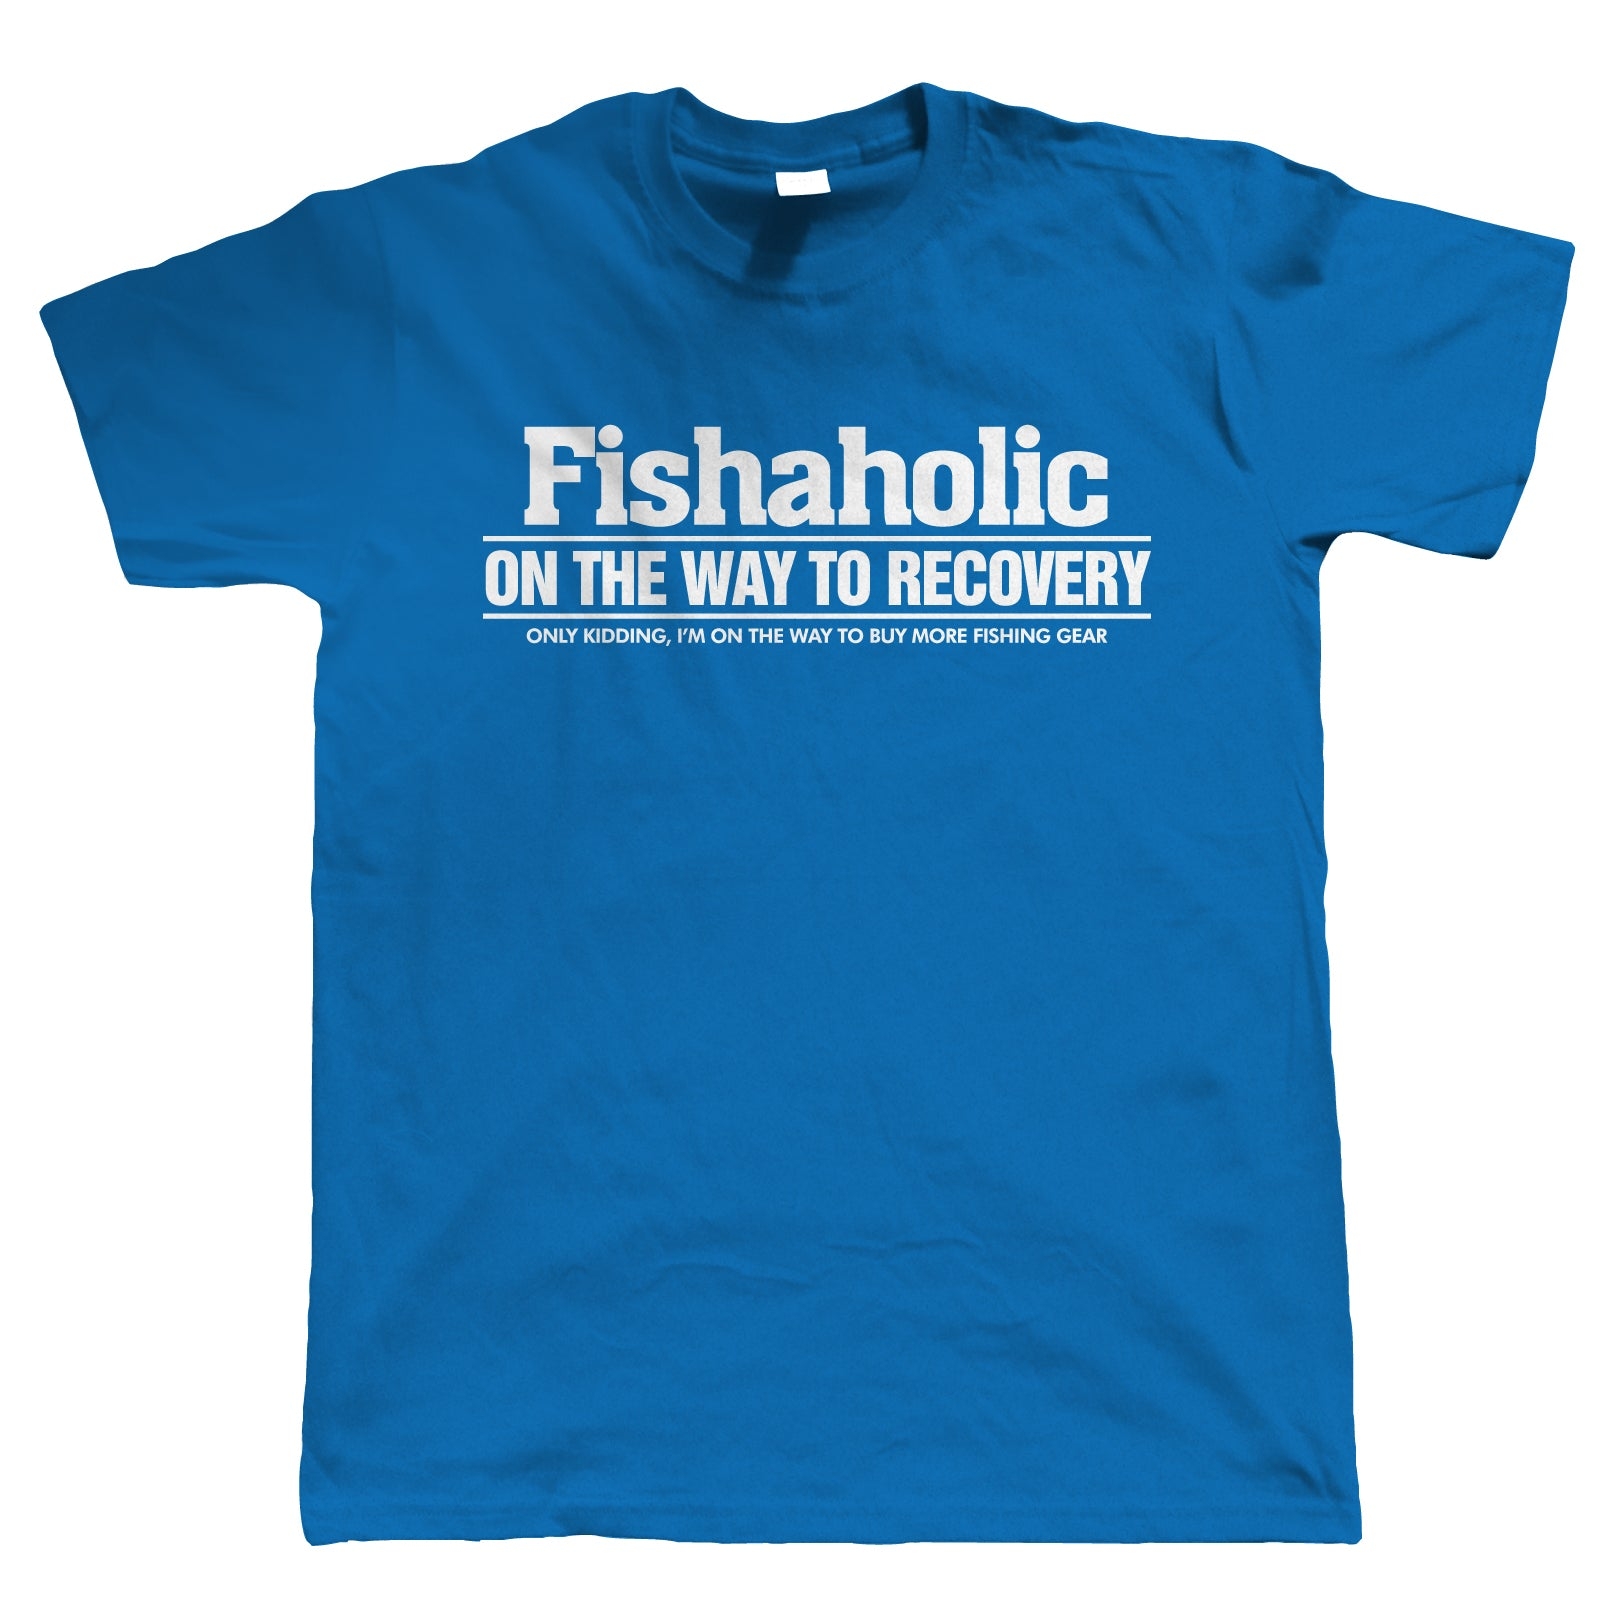 Fishaholic, Mens Funny Fishing T Shirt | Coarse Carp Sea Match Fly Specimen Tackle Fishermen Clothing Angling Angler | Cool Birthday Christmas Gift Present Him Dad Husband Son Grandad